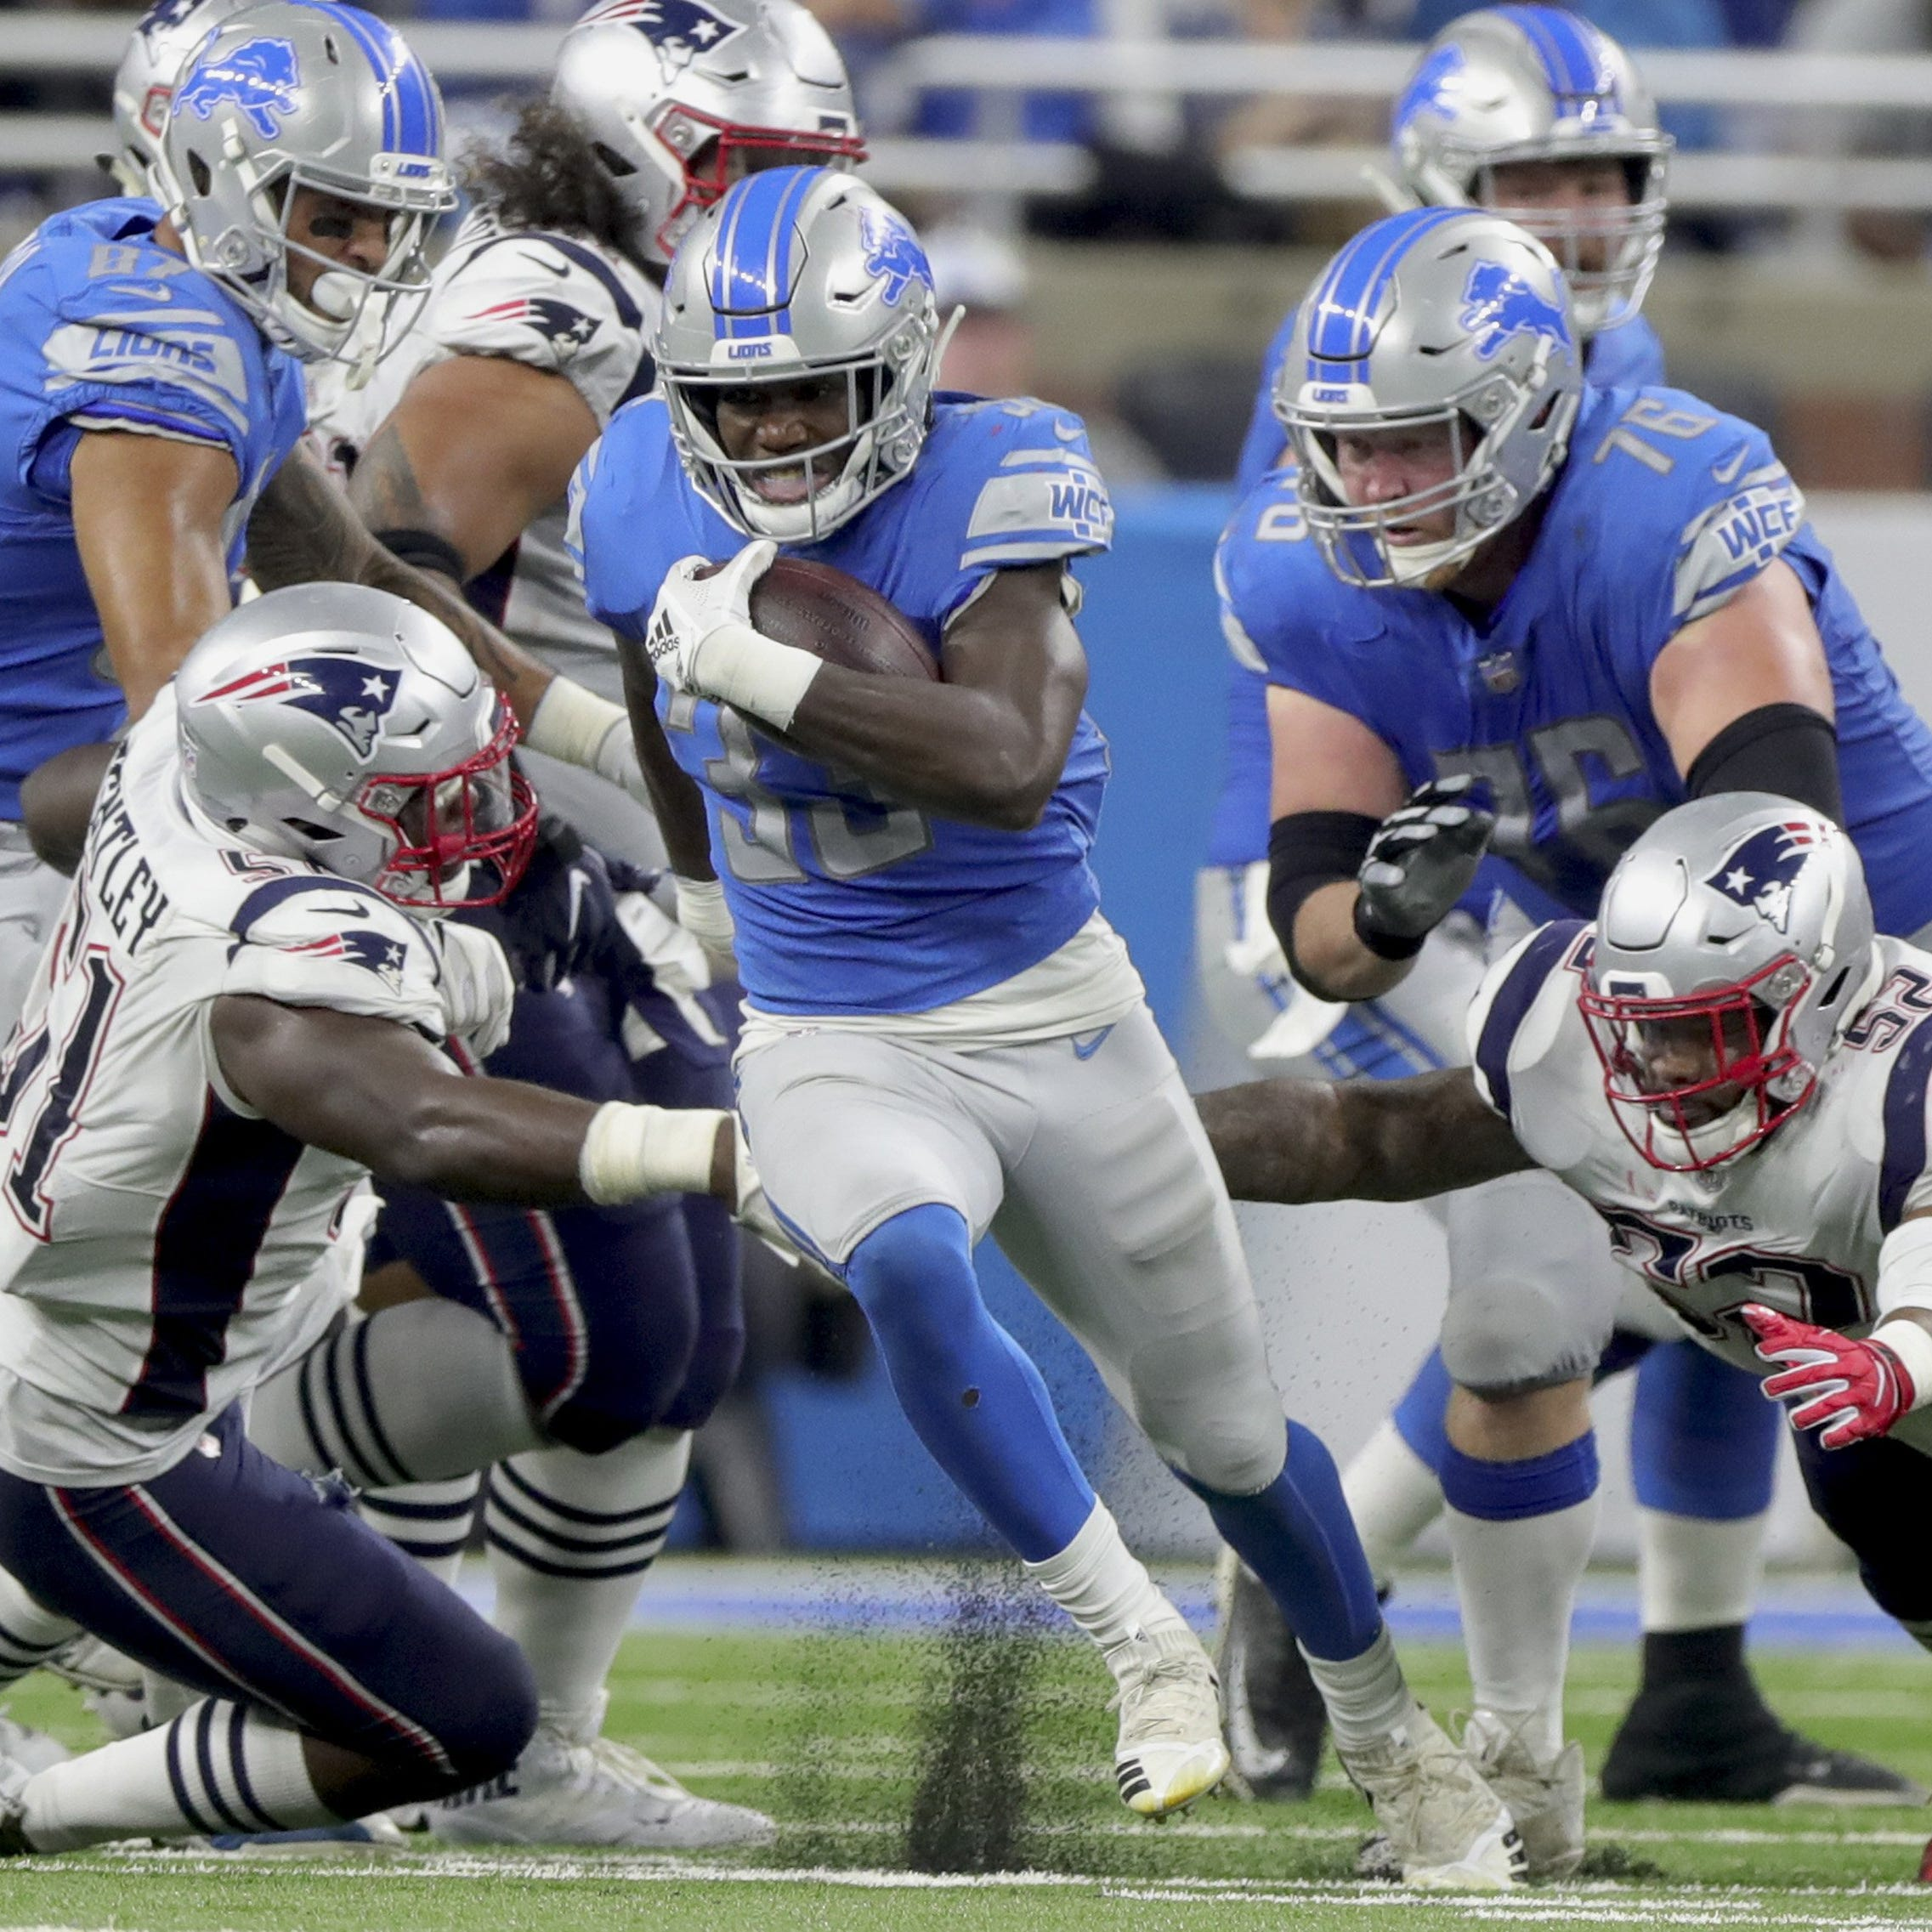 Detroit Lions' schedule comes out Wednesday: What you need to know